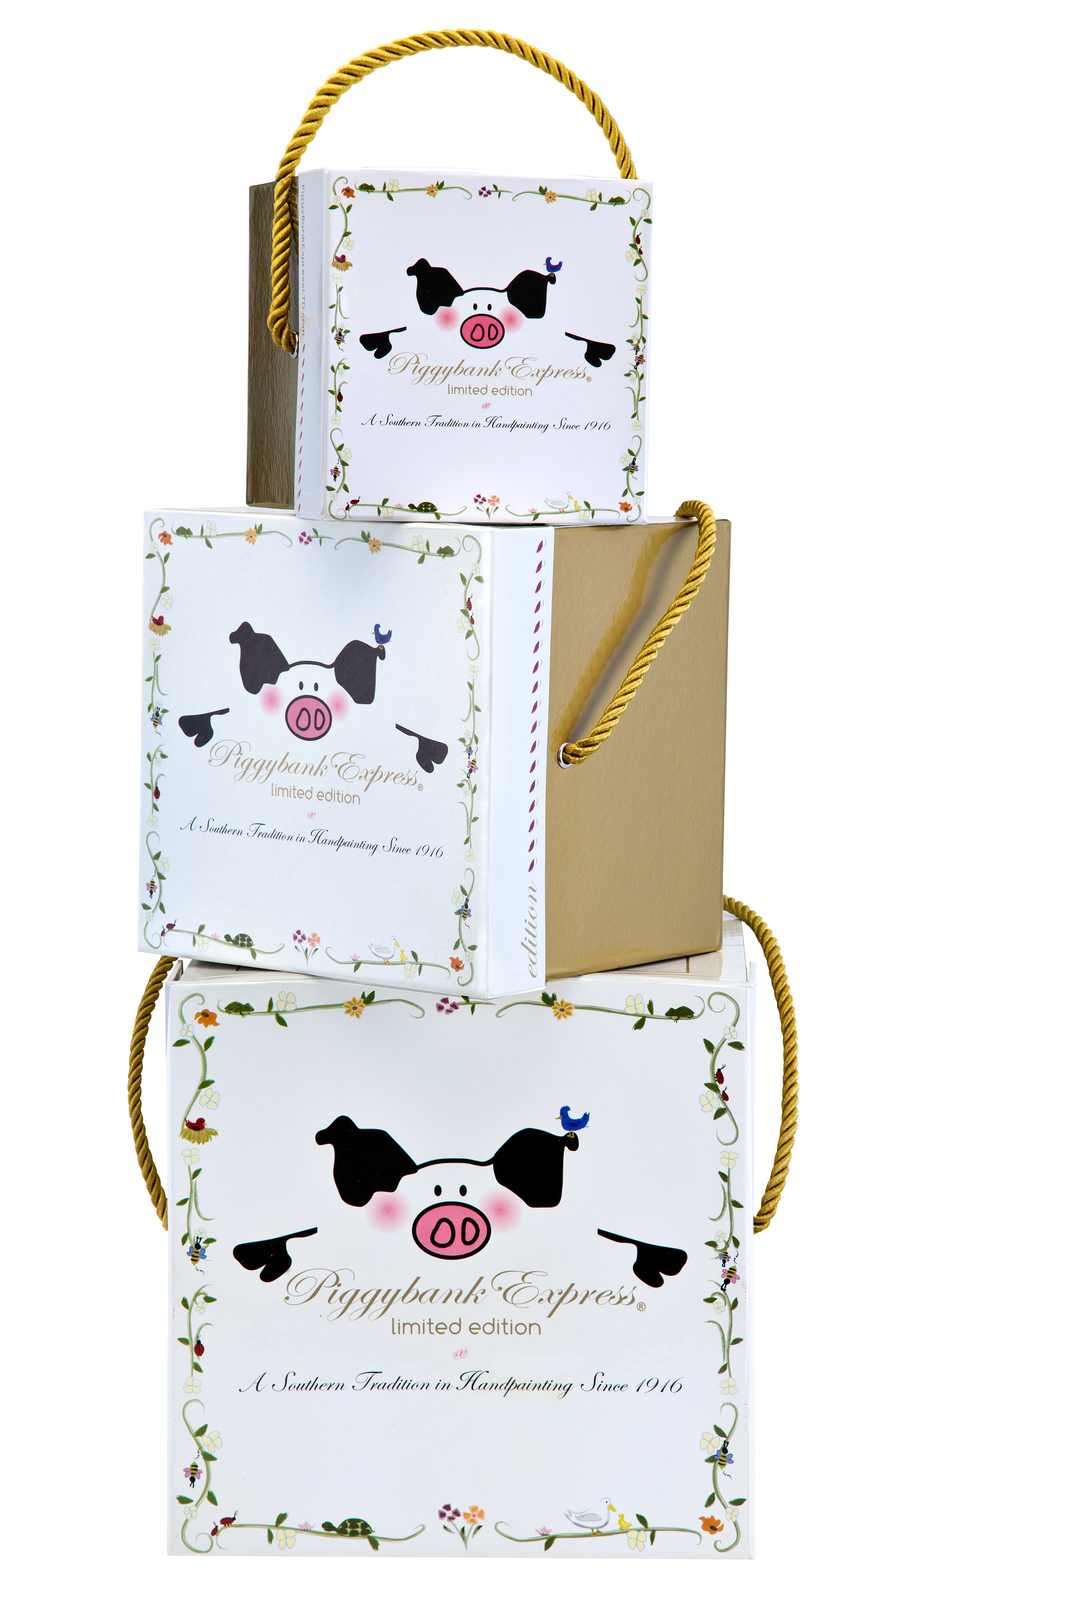 Piggy Bank Gift Box - Each piggy comes with it's own beautiful gift box you'll want to keep. Each is lined with black satin in which the piggy is snuggly placed for safe shipping.